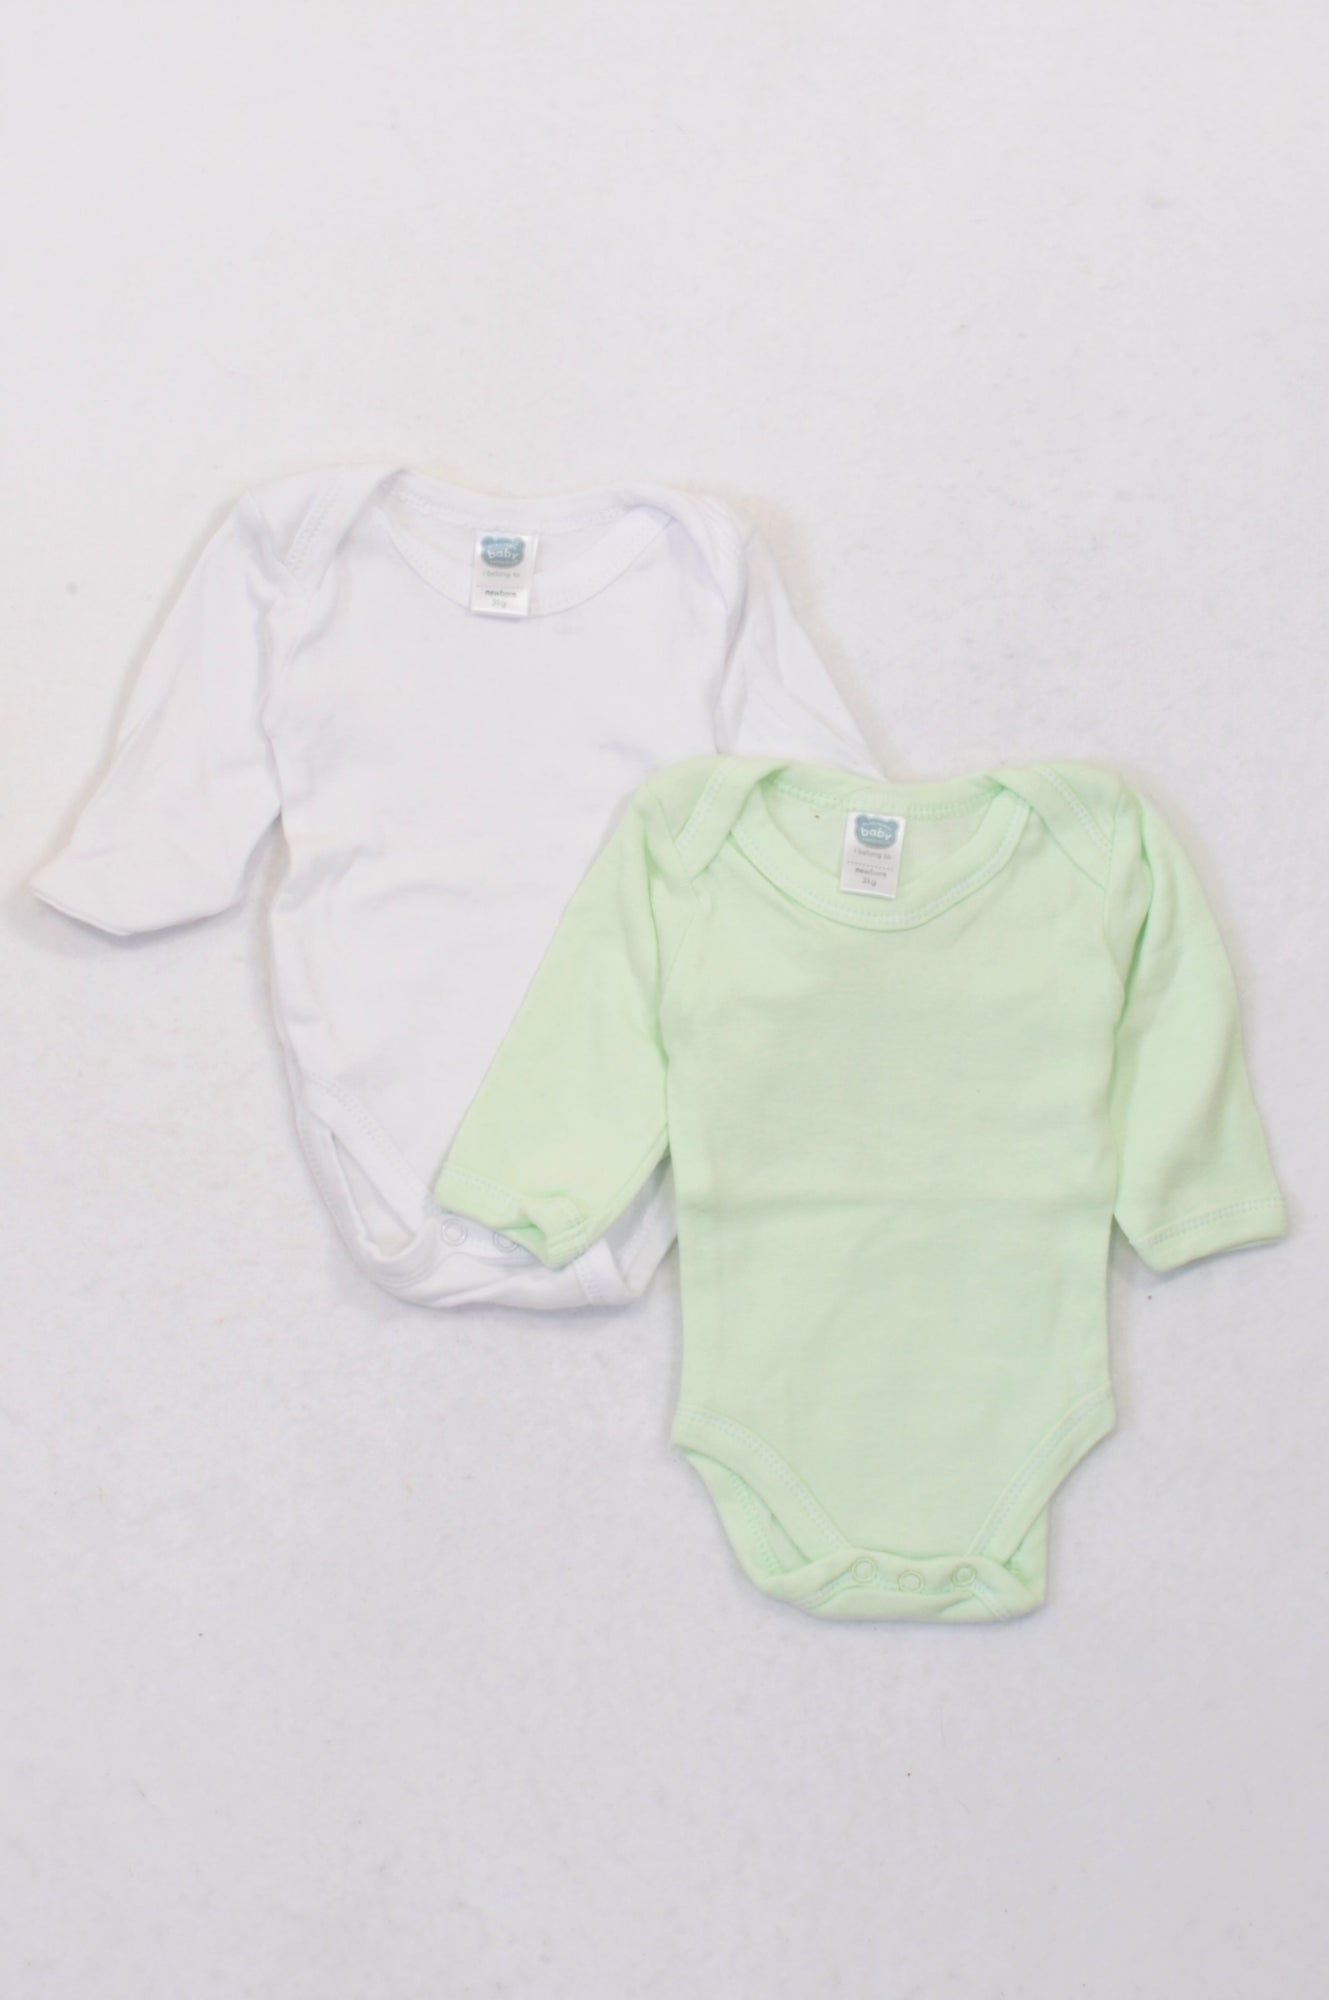 Ackermans 2 Pack Basic White & Mint Baby Grows Unisex N-B